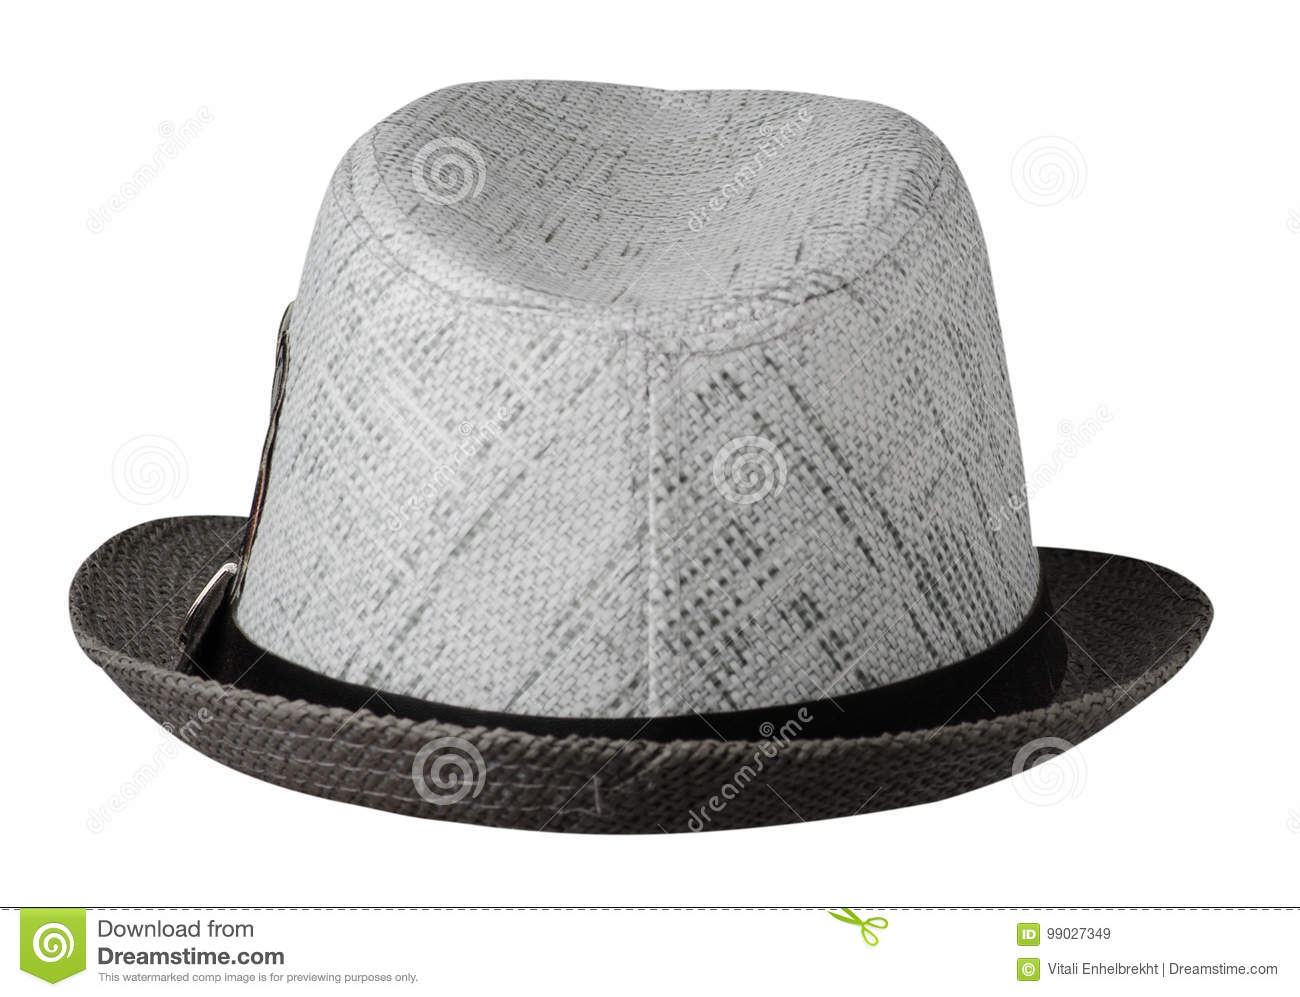 Hat with a brim